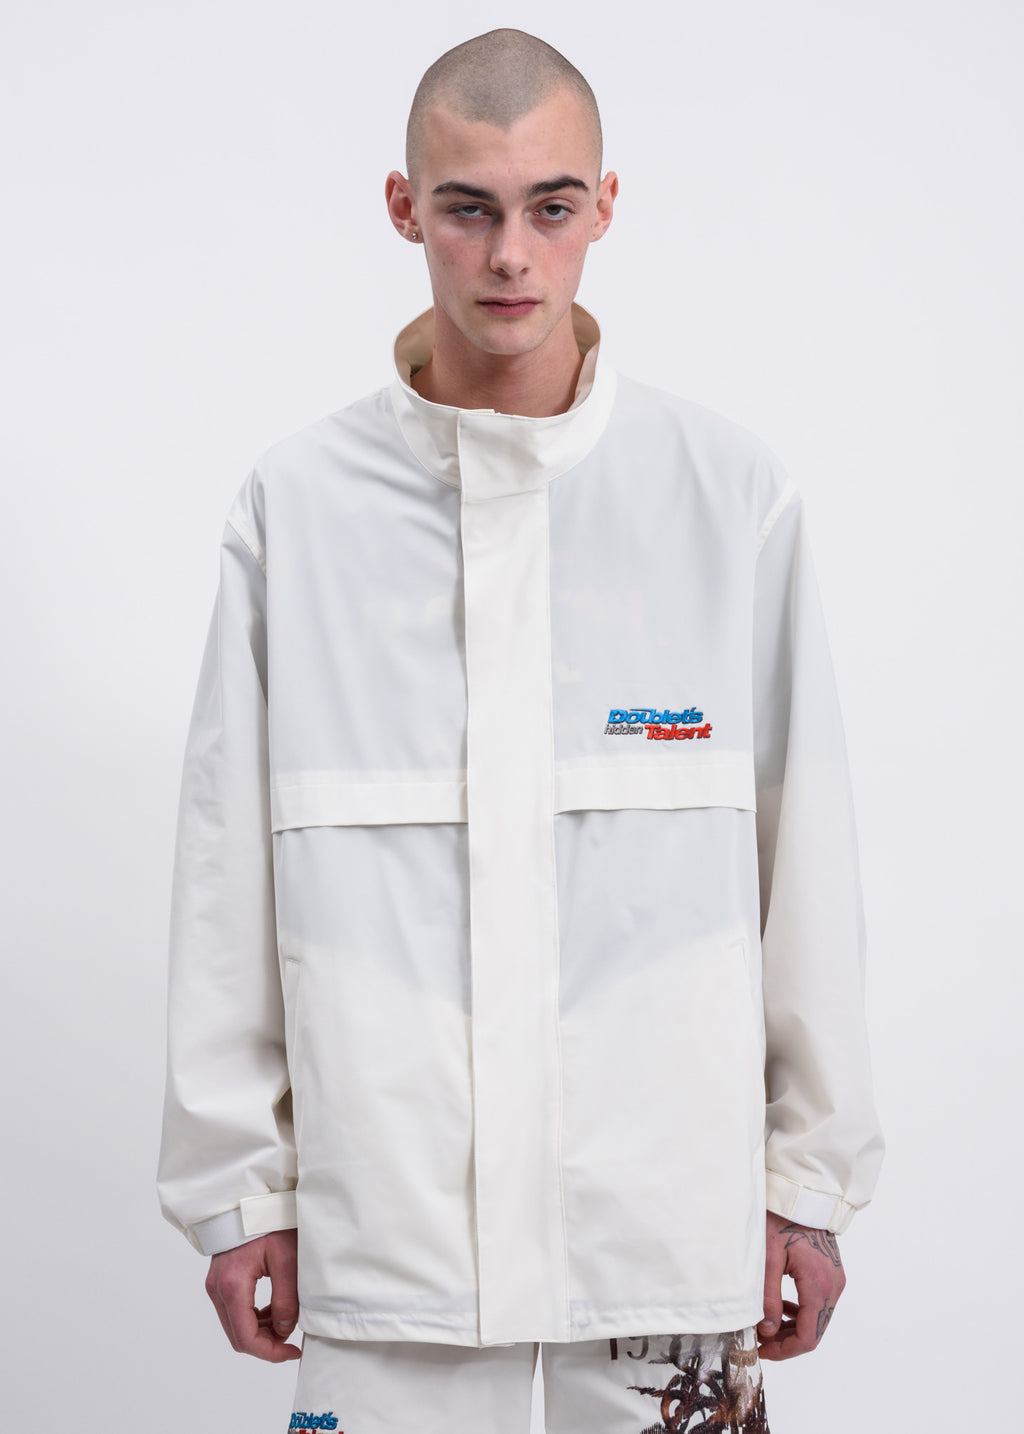 Doublet, White Printed Chaos Embroidery Track Jacket, 017 Shop